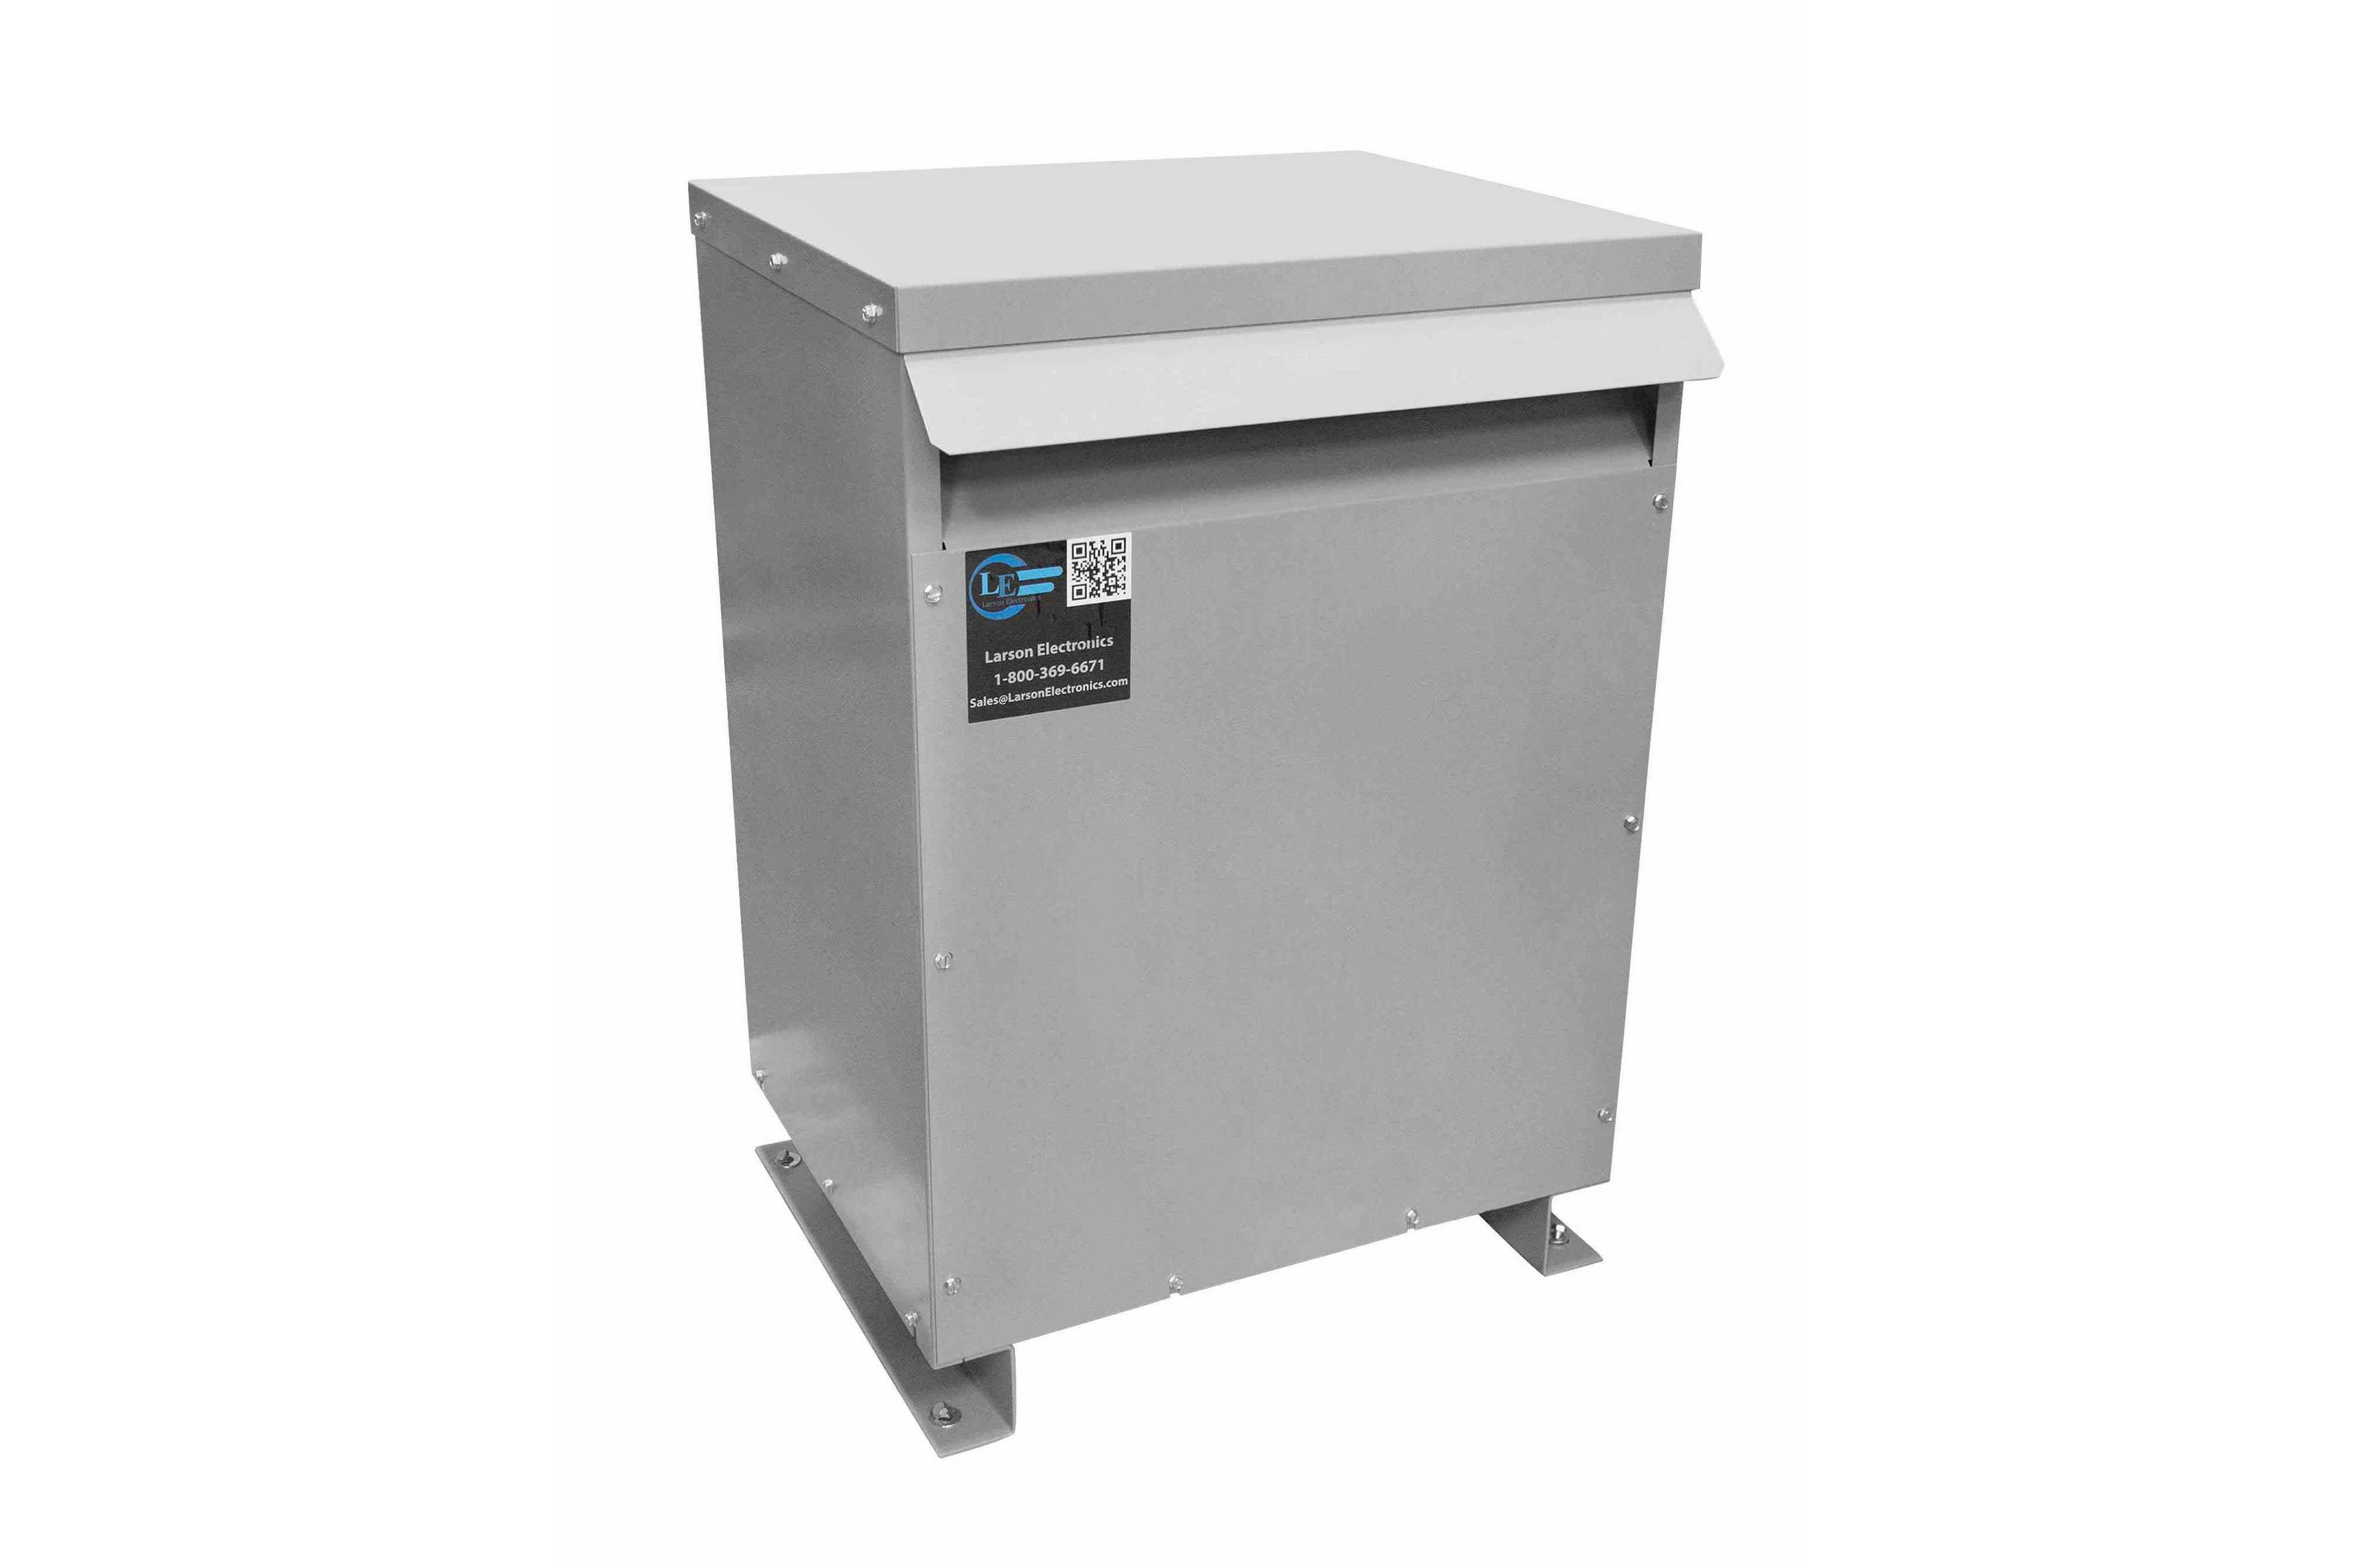 47.5 kVA 3PH Isolation Transformer, 380V Wye Primary, 480Y/277 Wye-N Secondary, N3R, Ventilated, 60 Hz